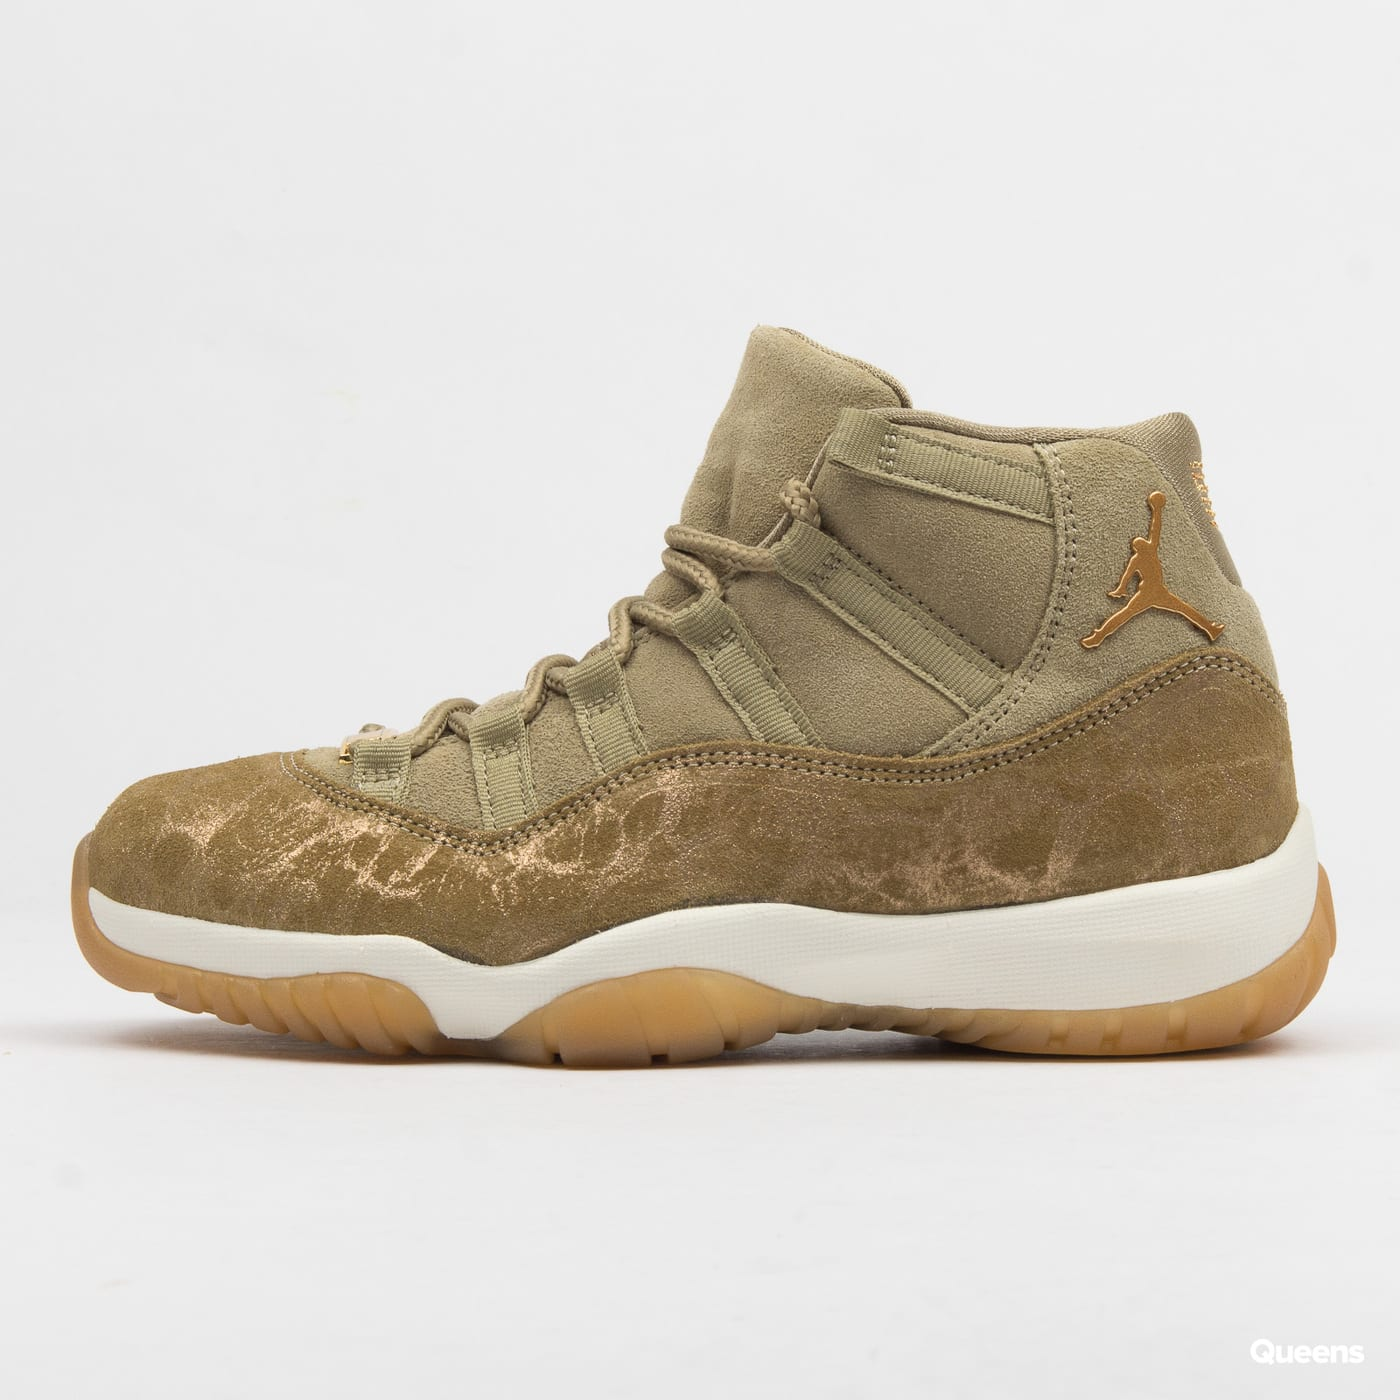 Jordan WMNS Air Jordan 11 Retro neutral olive / metallic stout - sail